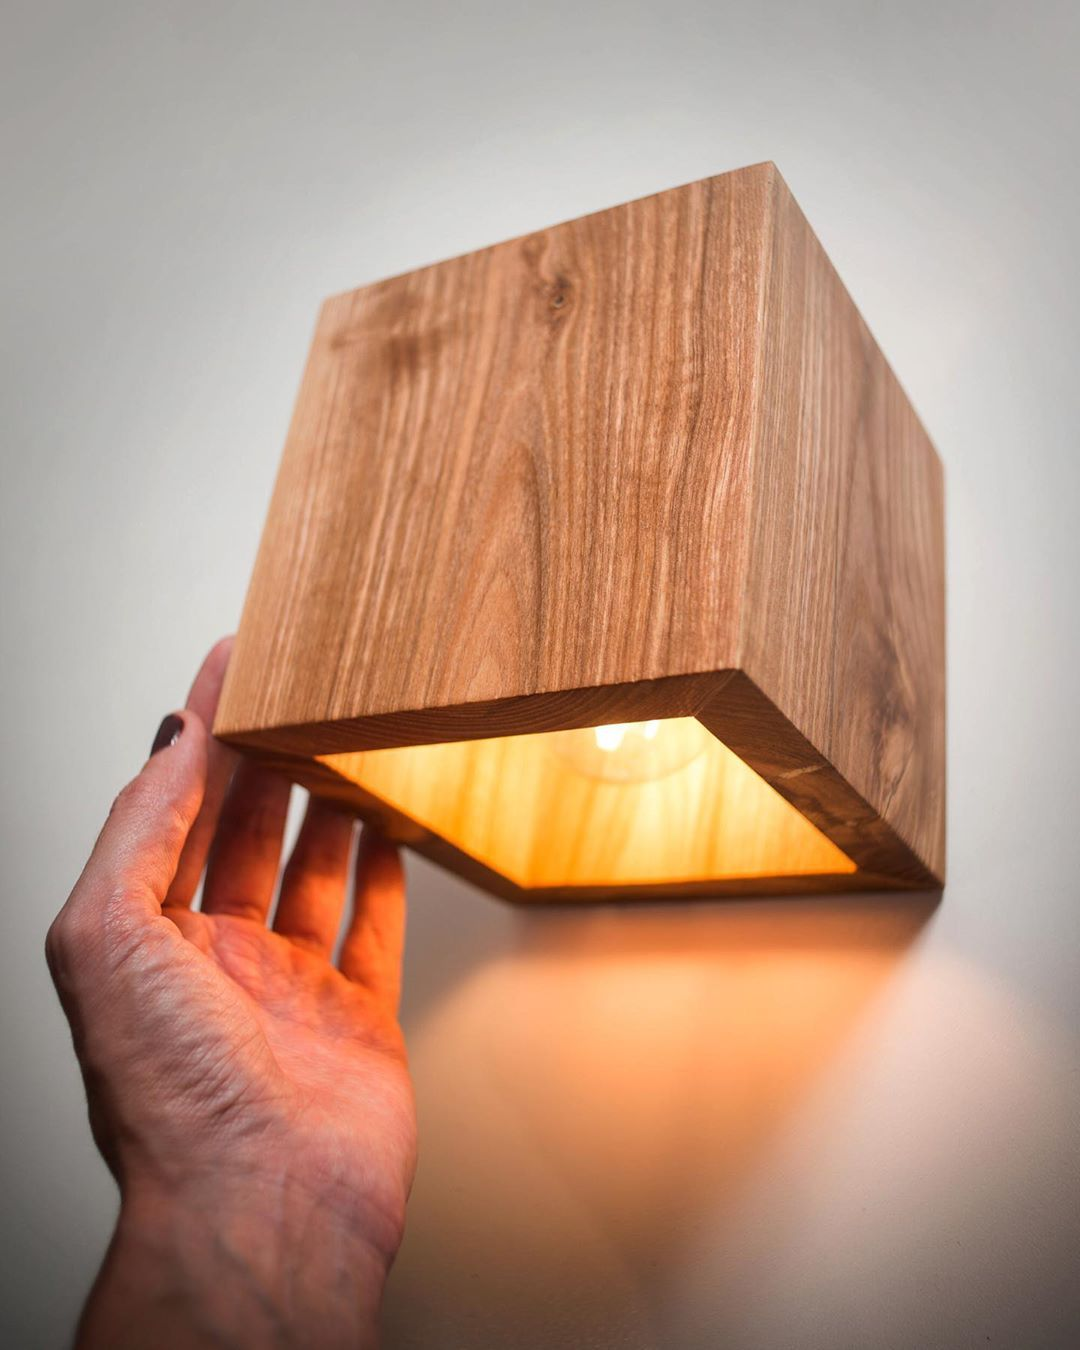 Discover Our Lighting Ideas For Bedroom Dining Room Of Even Farmhouse Nordic Industrial And Modern Our Recessed Or Wall Mo Wooden Lamp Wood Sconce Wood Lamps